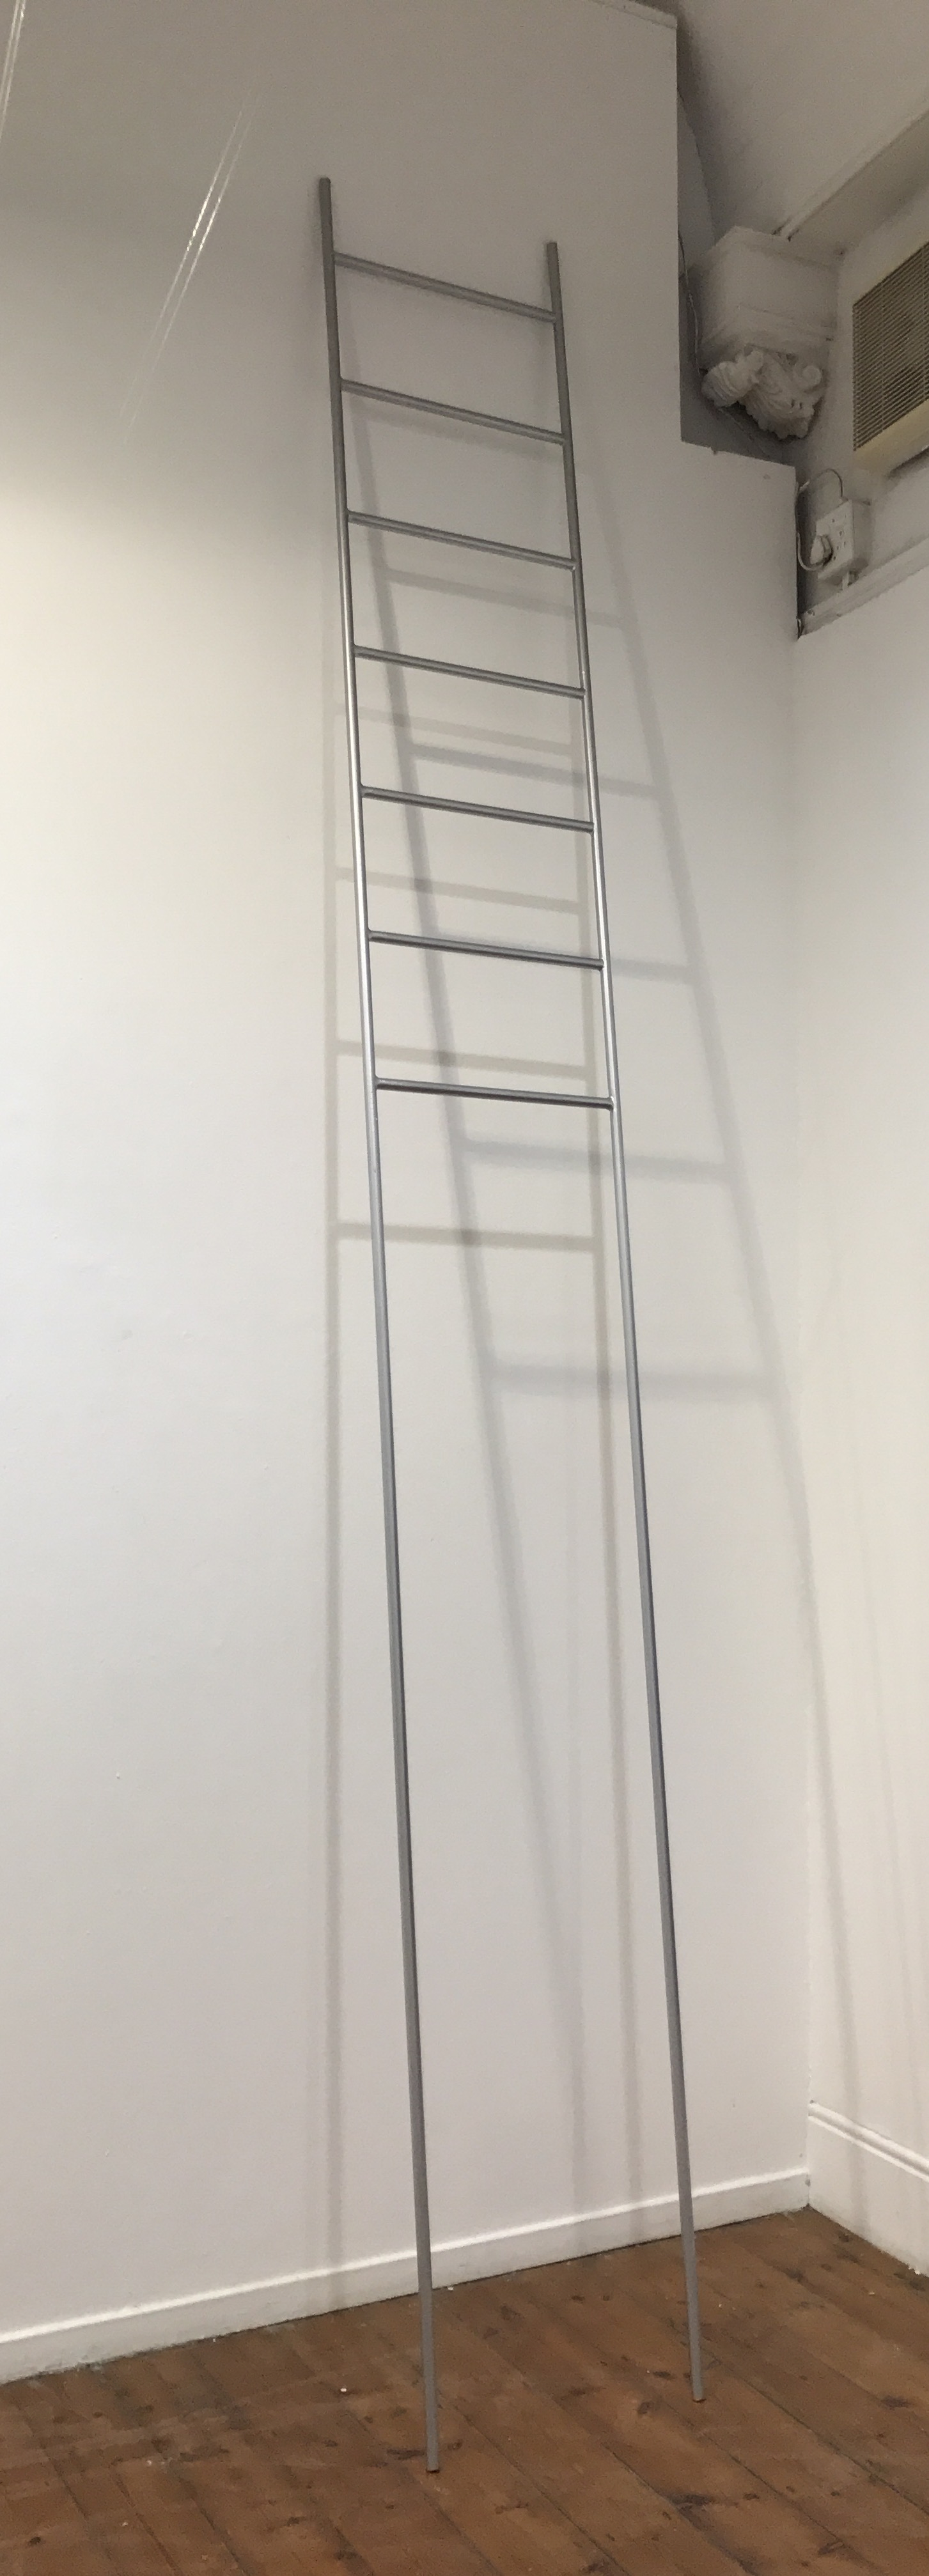 an art piece made of a galvanized steel ladder